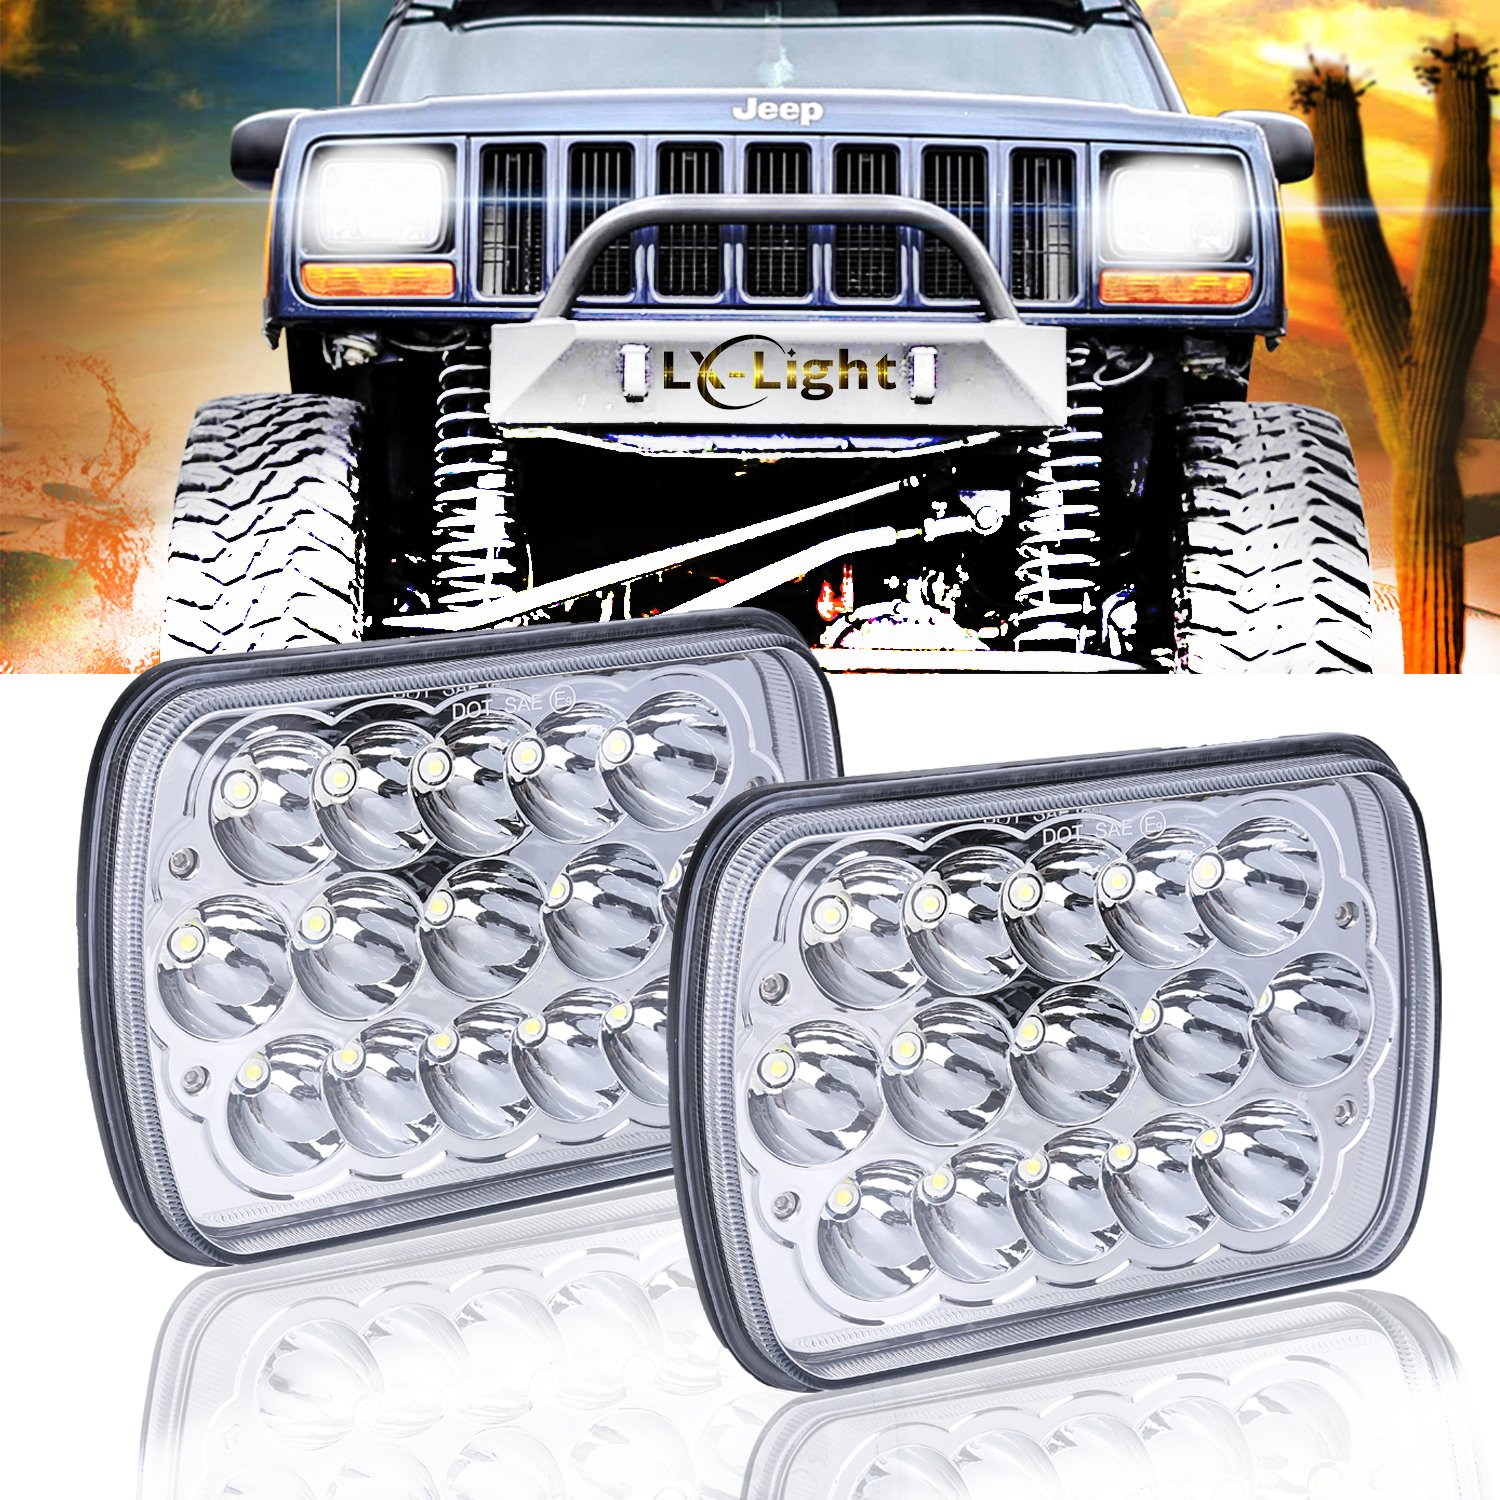 "(2 Pcs) DOT approved 5"" x 7"" 6x7inch Rectangular LED Headlights for Jeep Wrangler YJ Cherokee XJ Trucks 4X4 Offroad Headlamp Replacement H6054 H5054 H6054LL 69822 6052 6053 LX-LIGHT"